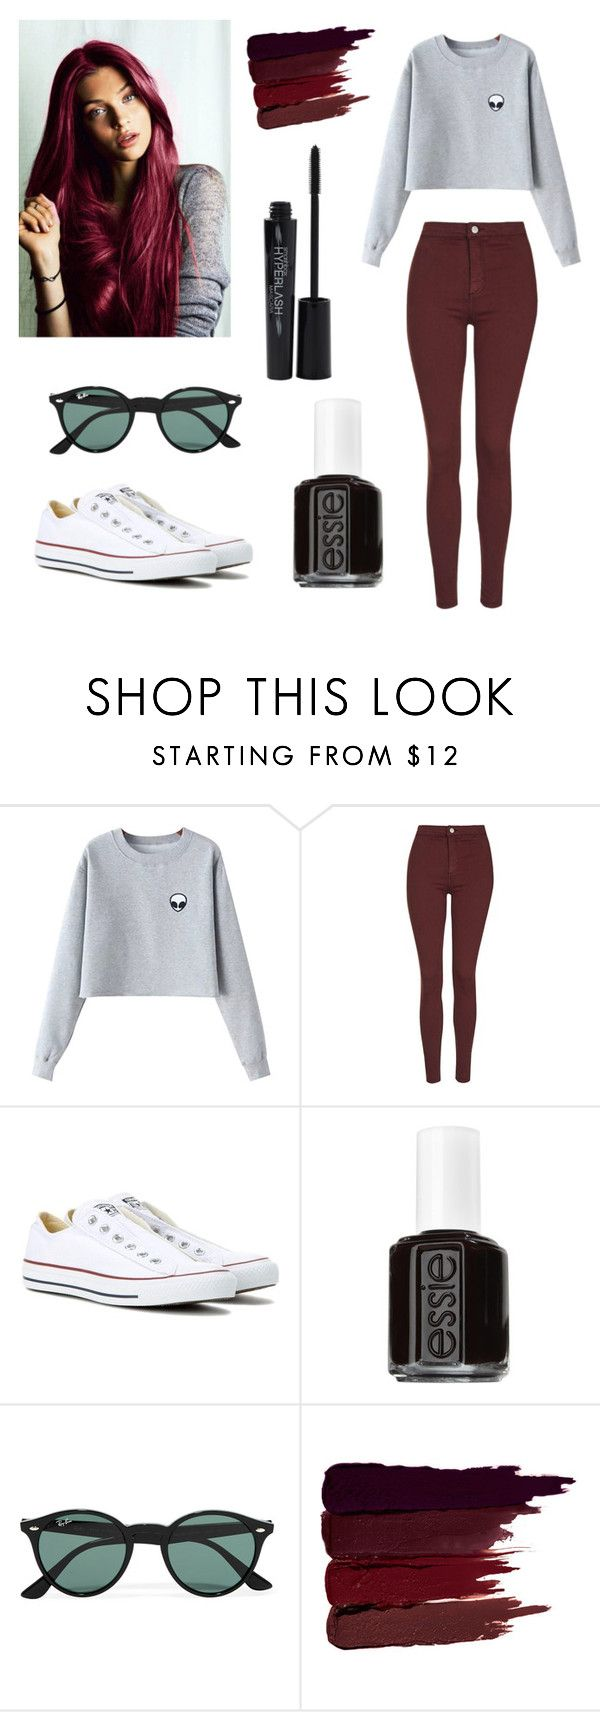 """""""Untitled #217"""" by thebeauty98 ❤ liked on Polyvore featuring Chicnova Fashion, Topshop, Converse, Essie, Ray-Ban, Serge Lutens and Smashbox"""